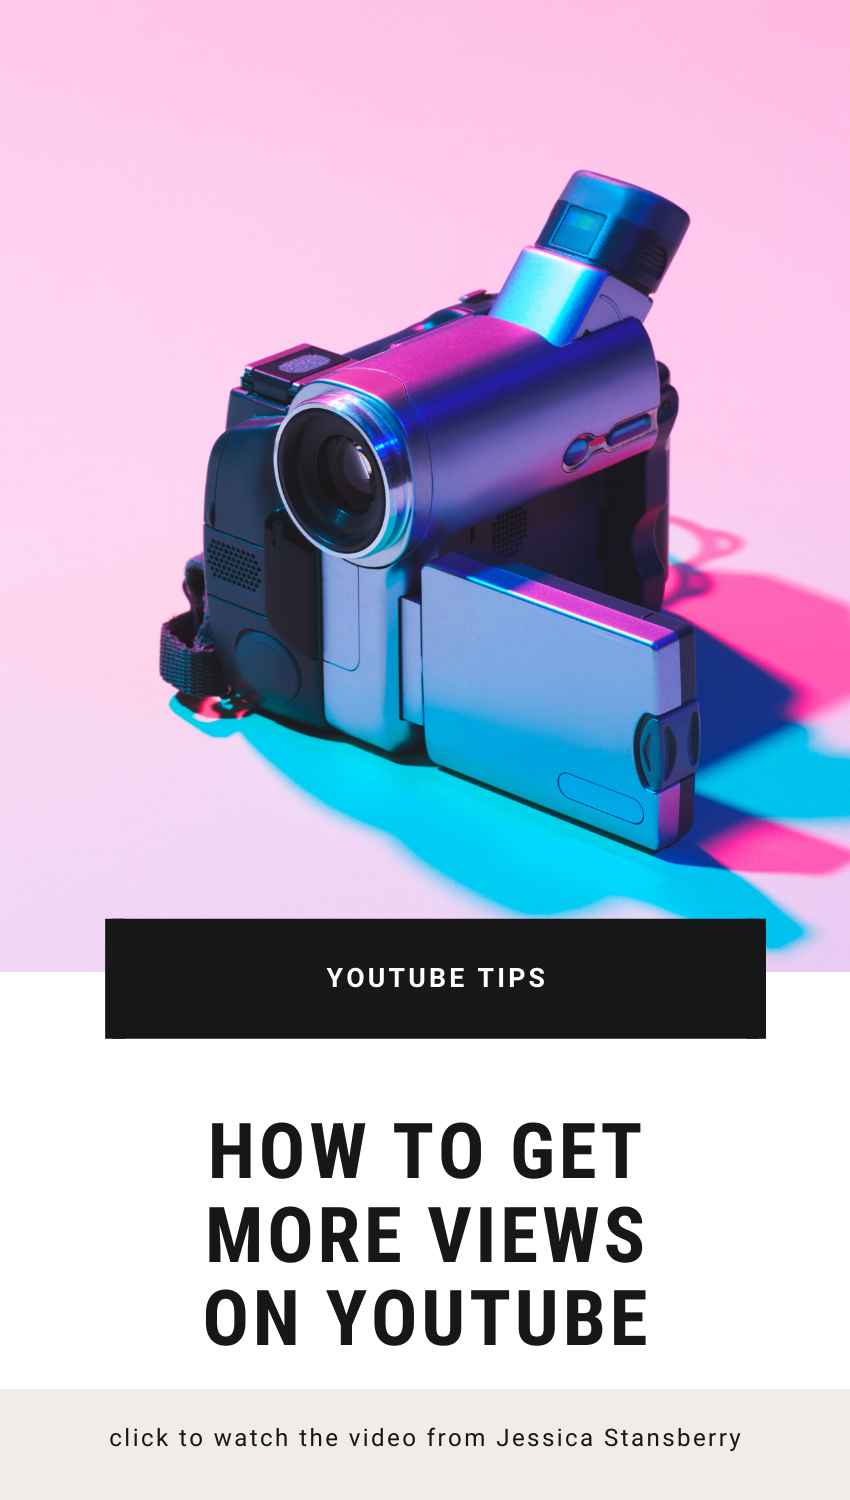 Get More Views On Youtube To Grow Your Youtube Channel Super Fast Growth Tips For Video Marketing Business Online Video Marketing Video Marketing Strategies